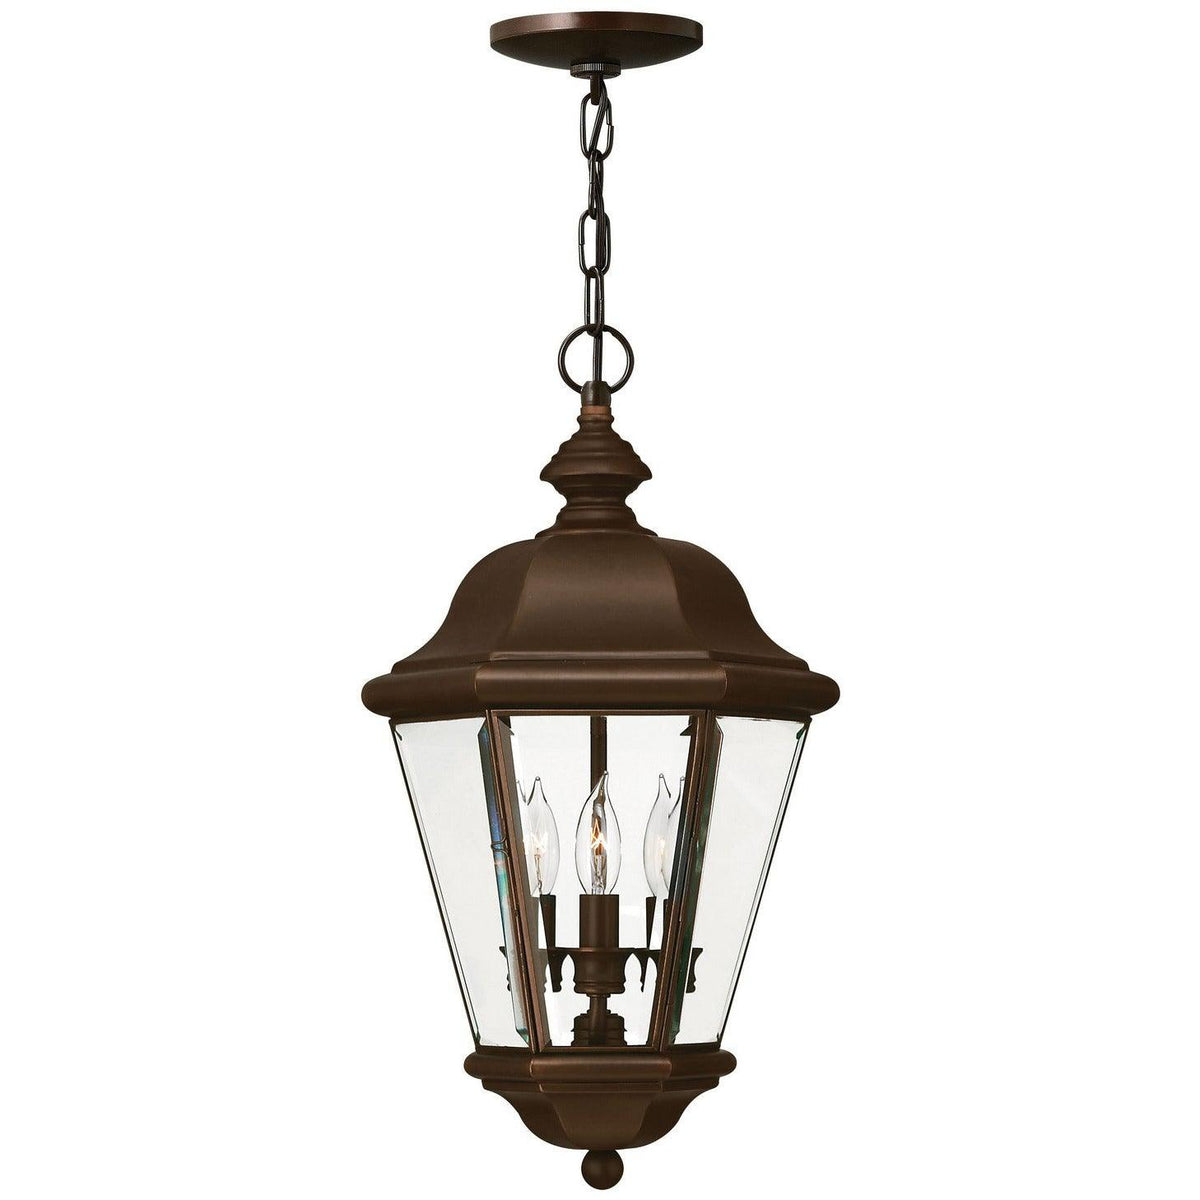 Hinkley Canada - 2422CB - Three Light Hanging Lantern - Clifton Park - Copper Bronze